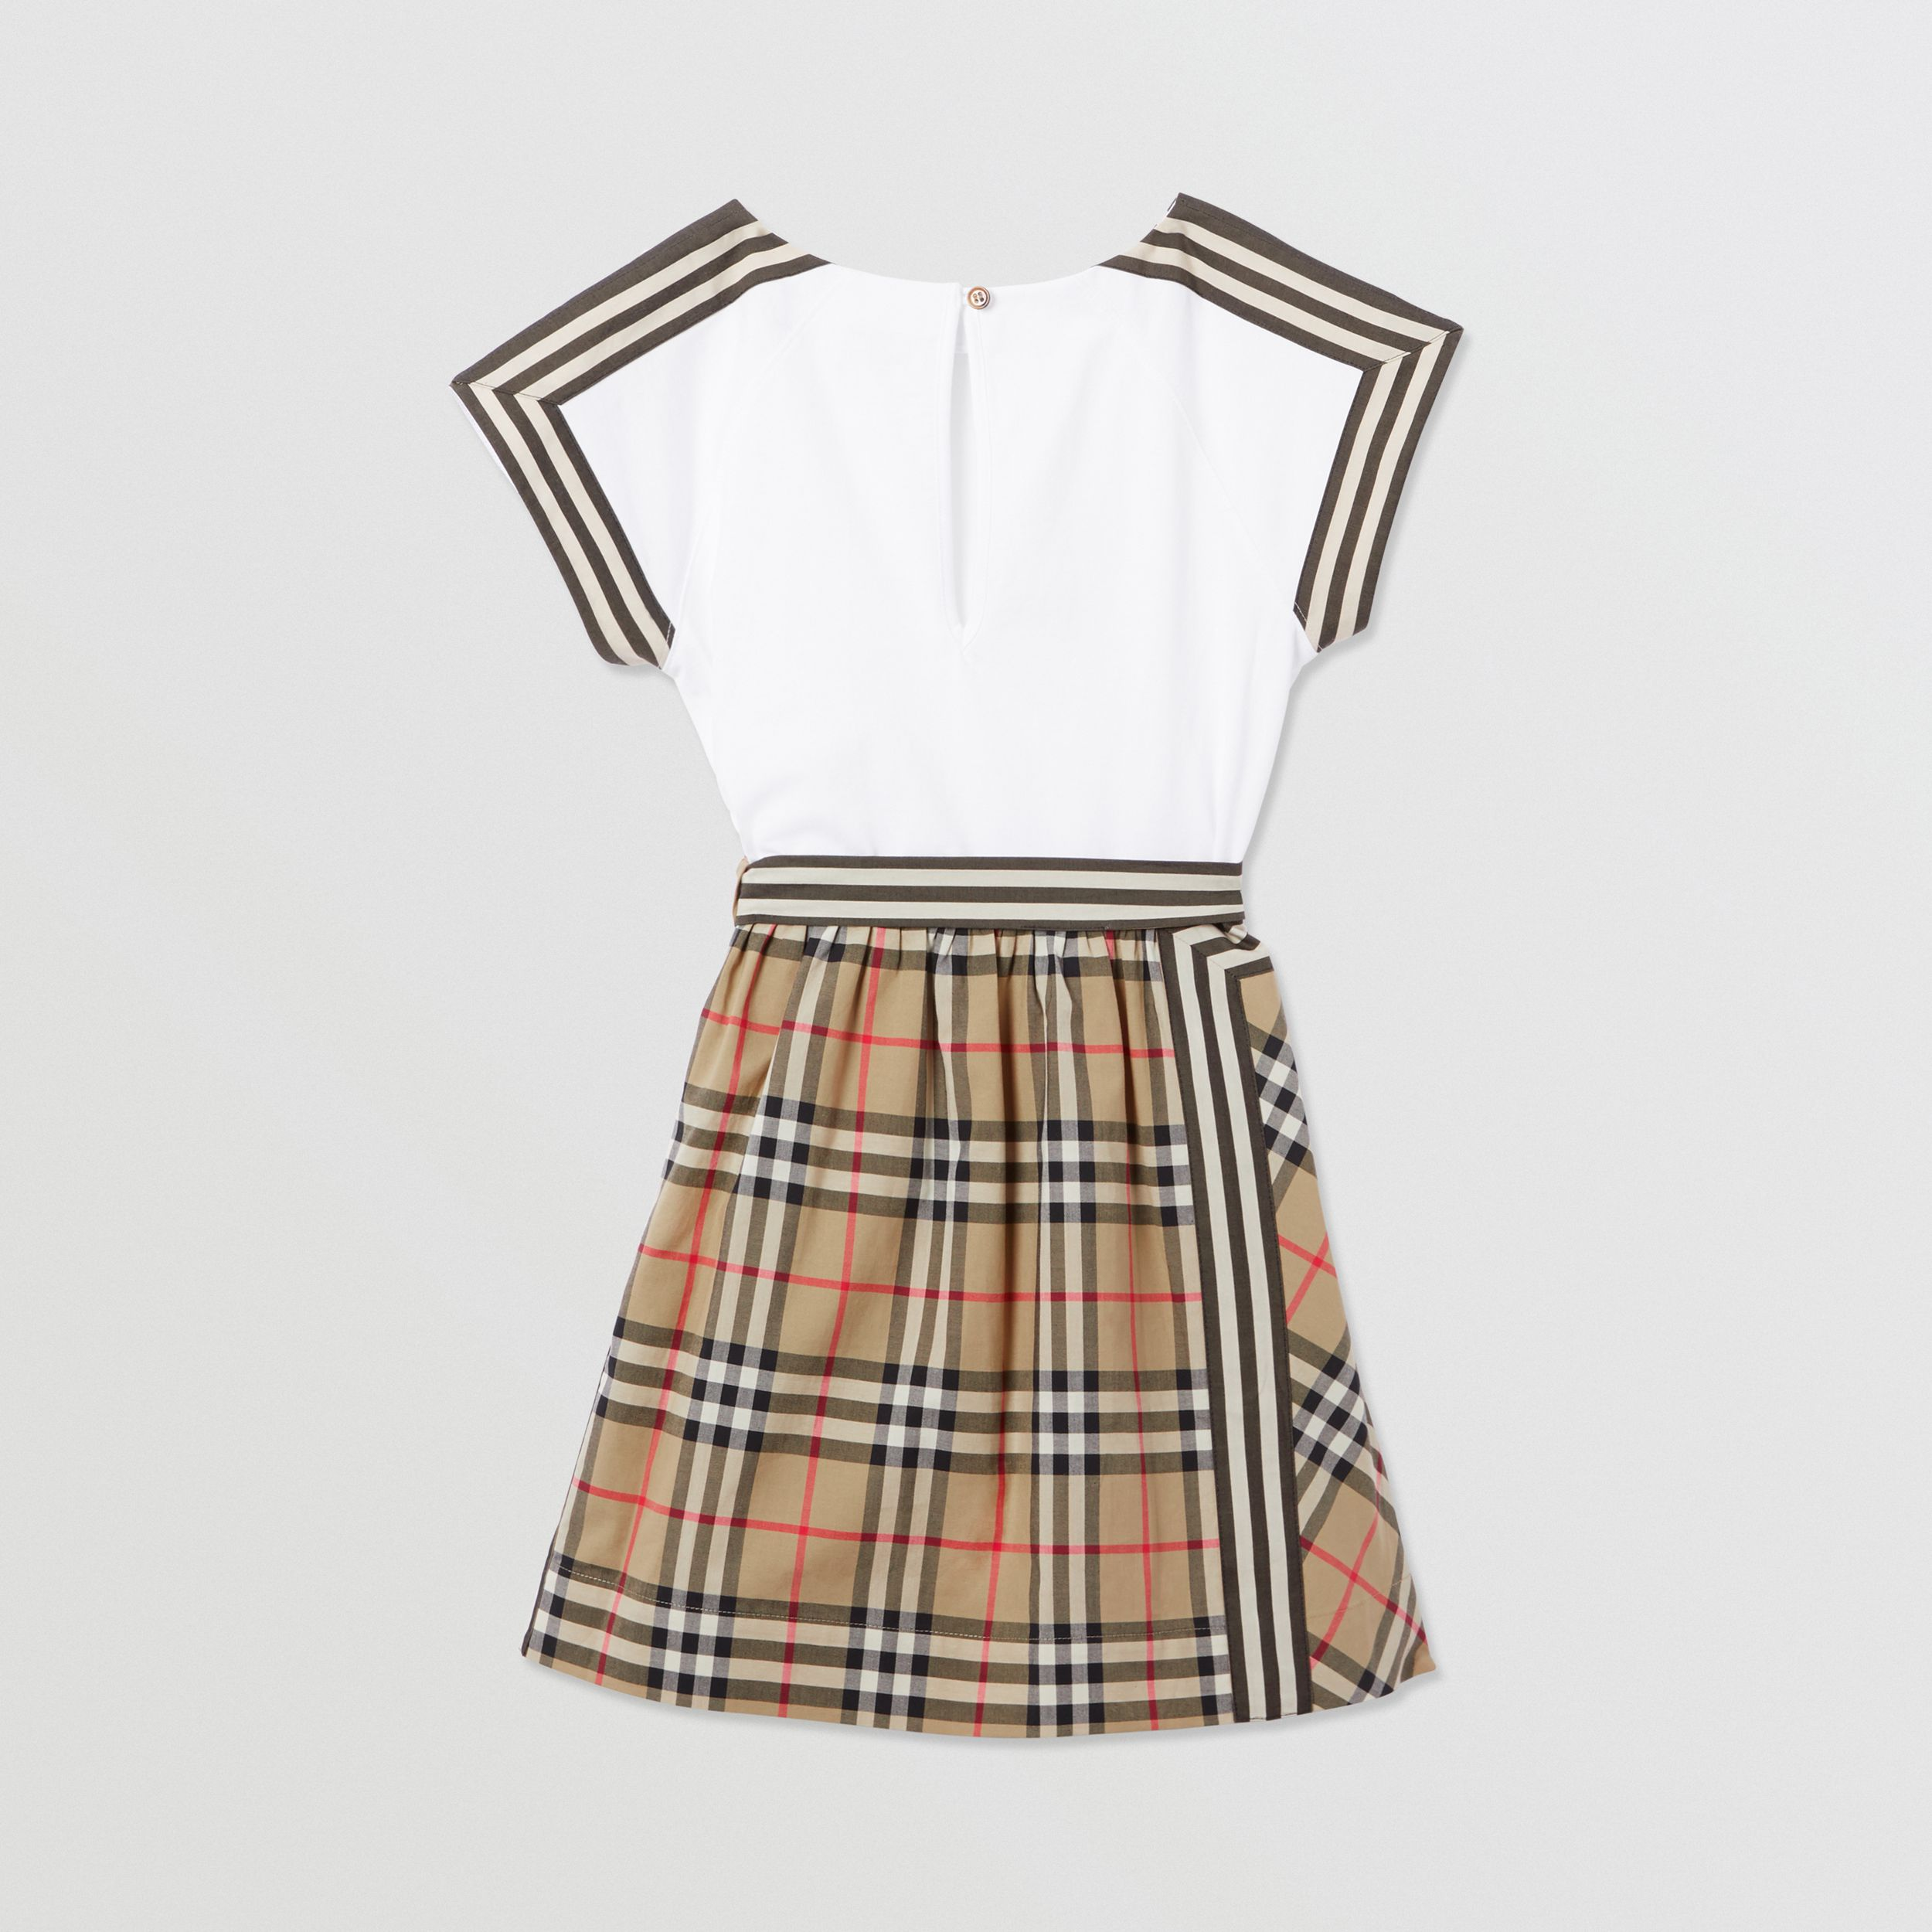 Vintage Check Detail Cotton Dress in Archive Beige | Burberry - 4